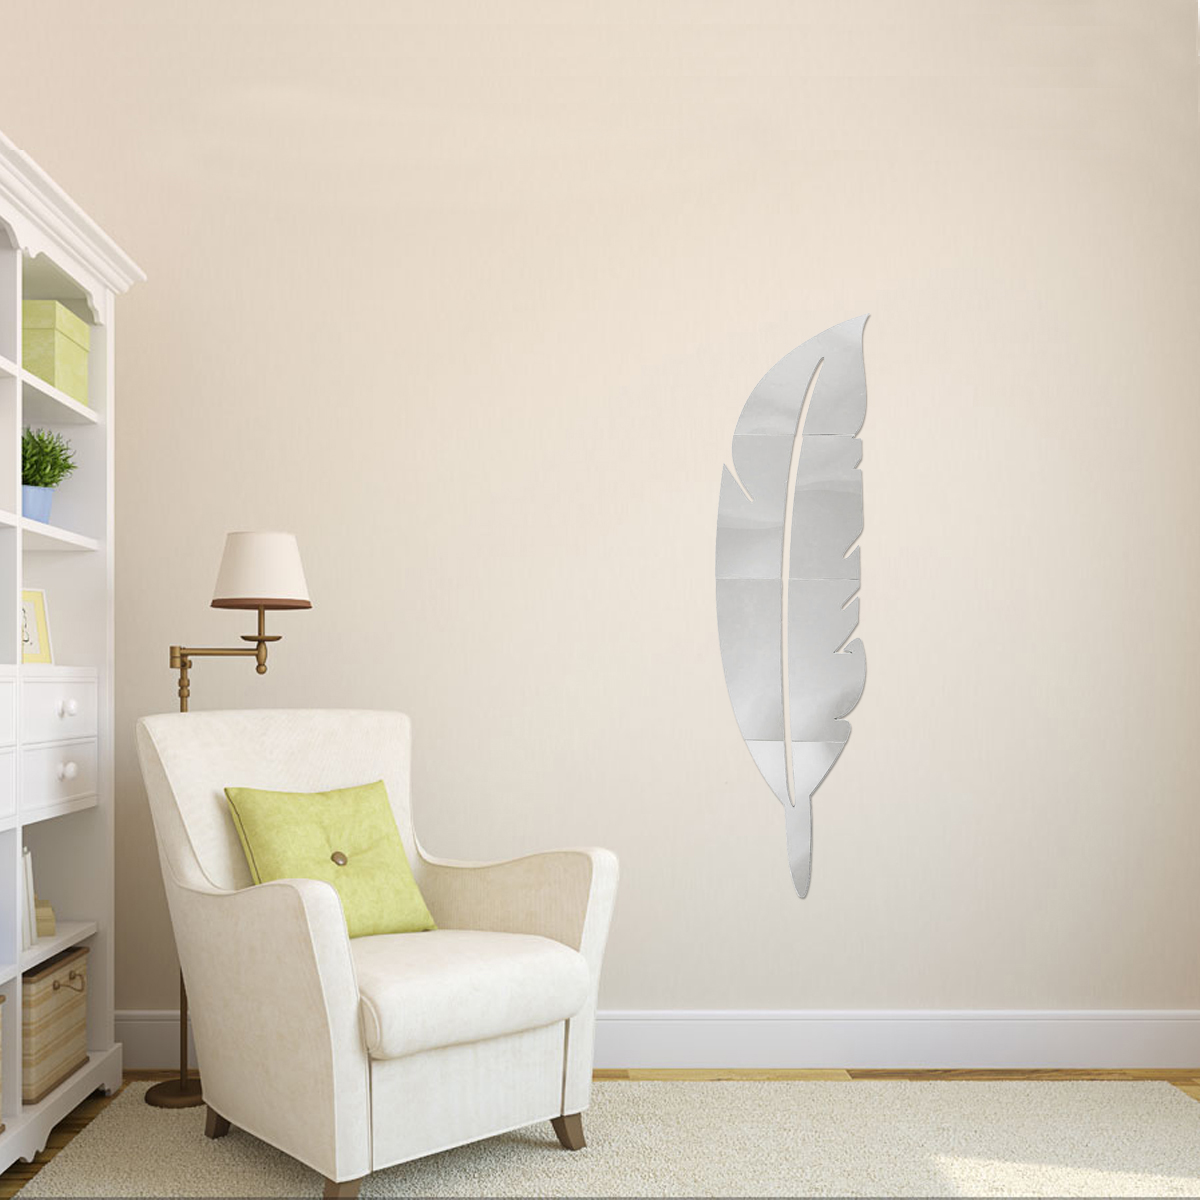 Diy modern plume feather acrylic mirror wall sticker home for Wall decor mirror home accents